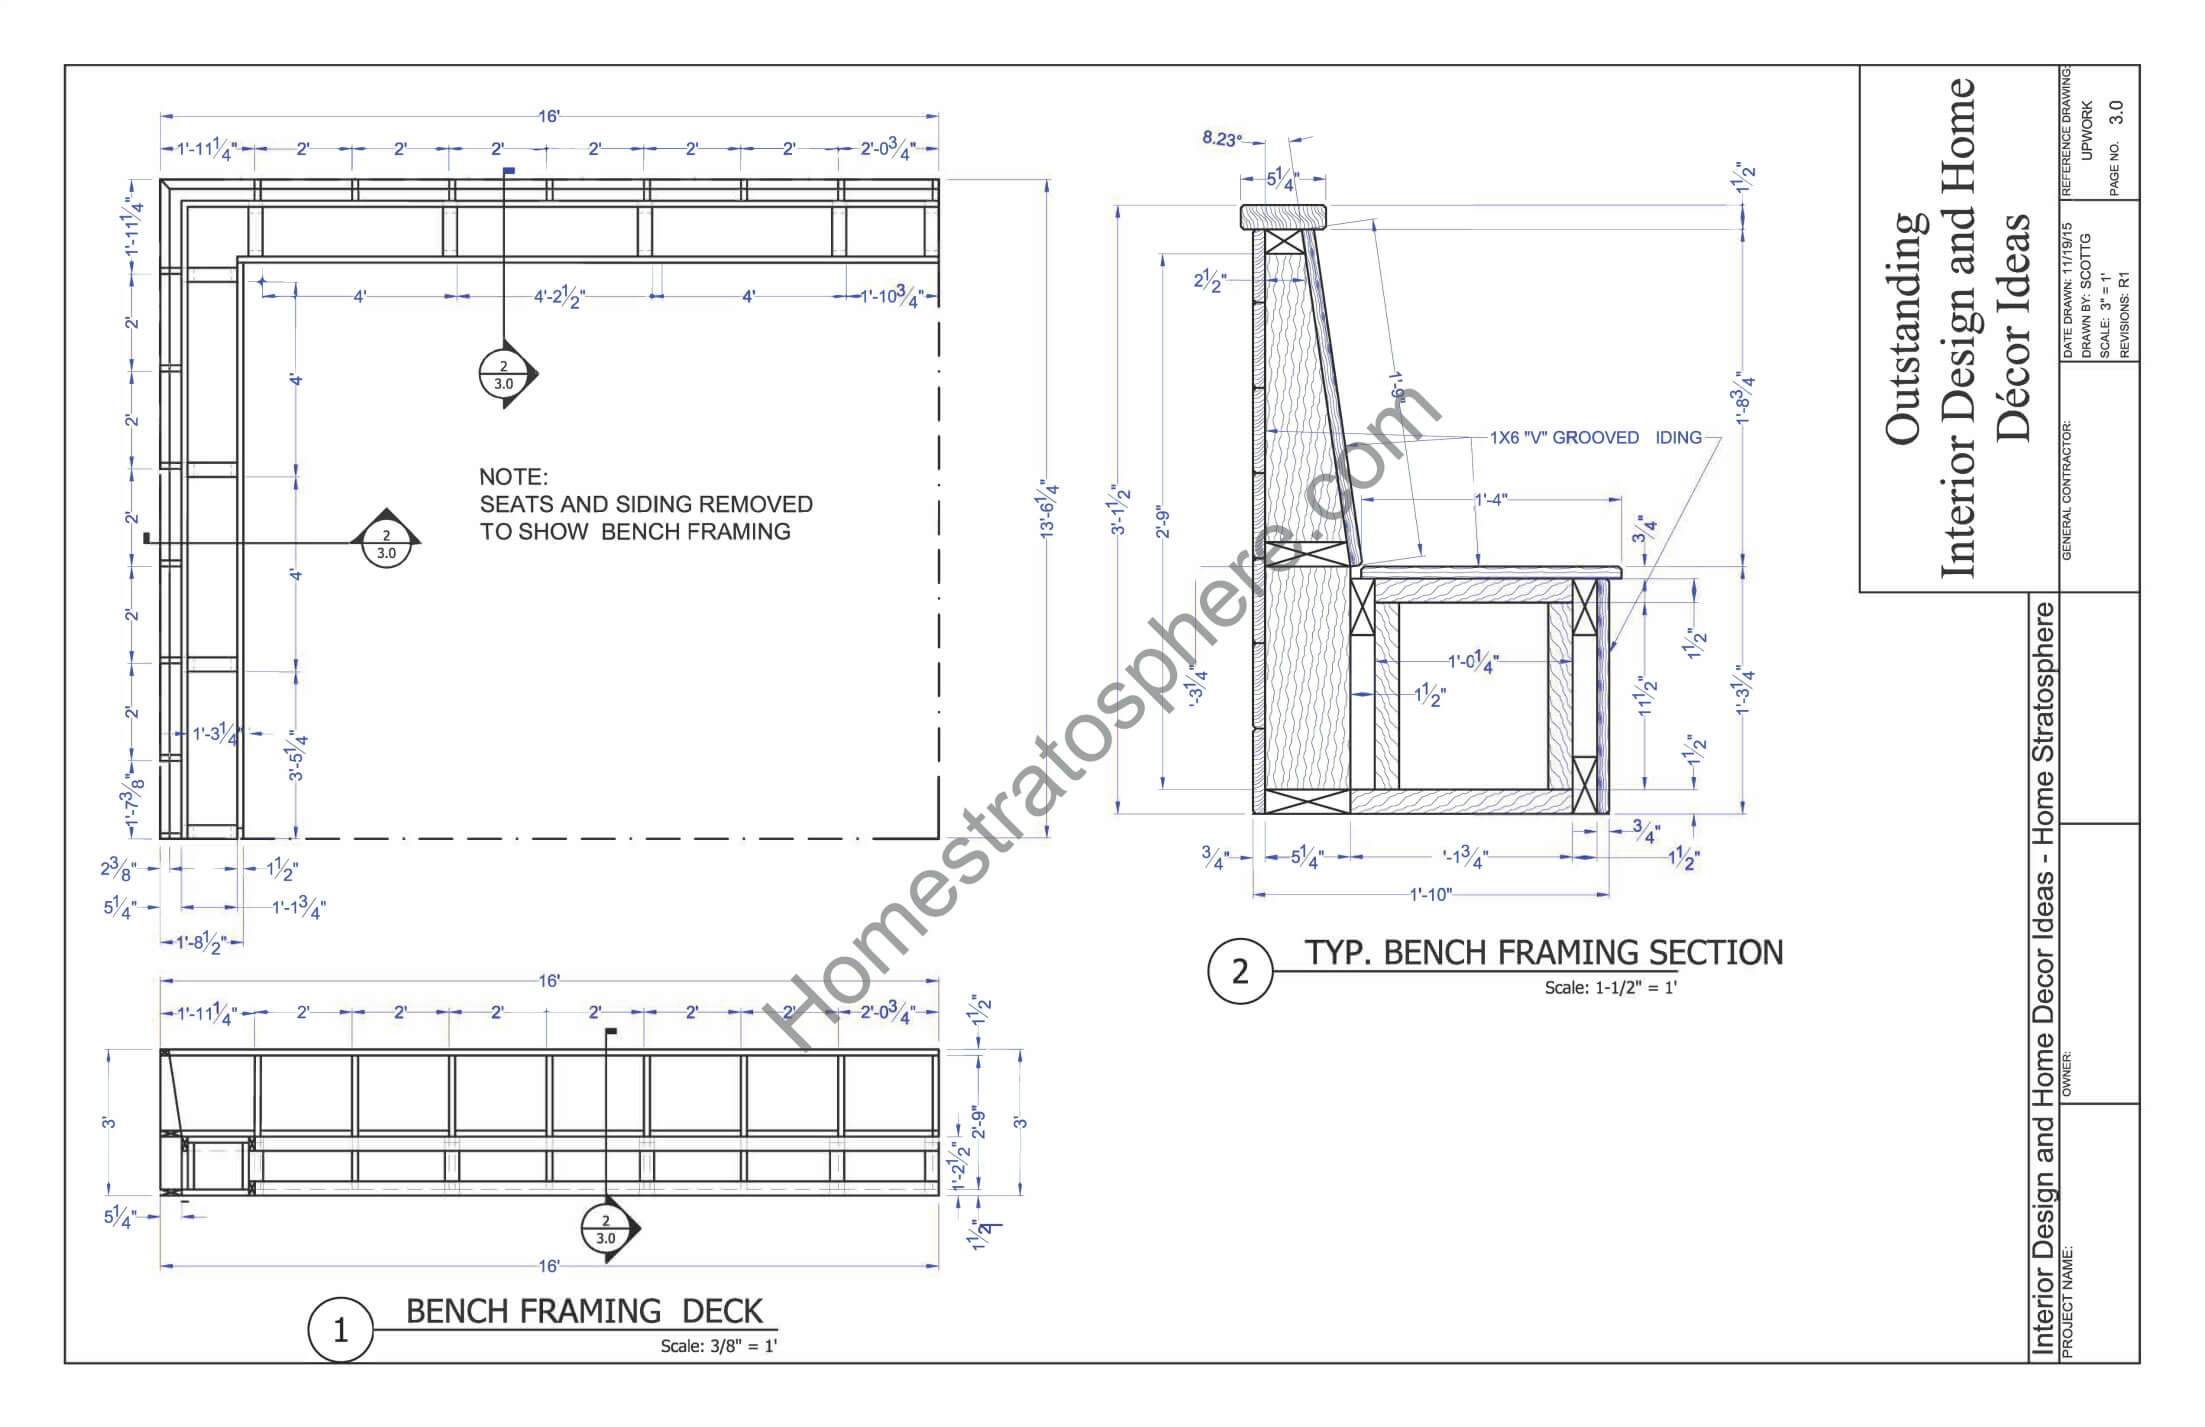 Bench Framing for Deck Built-In Benches